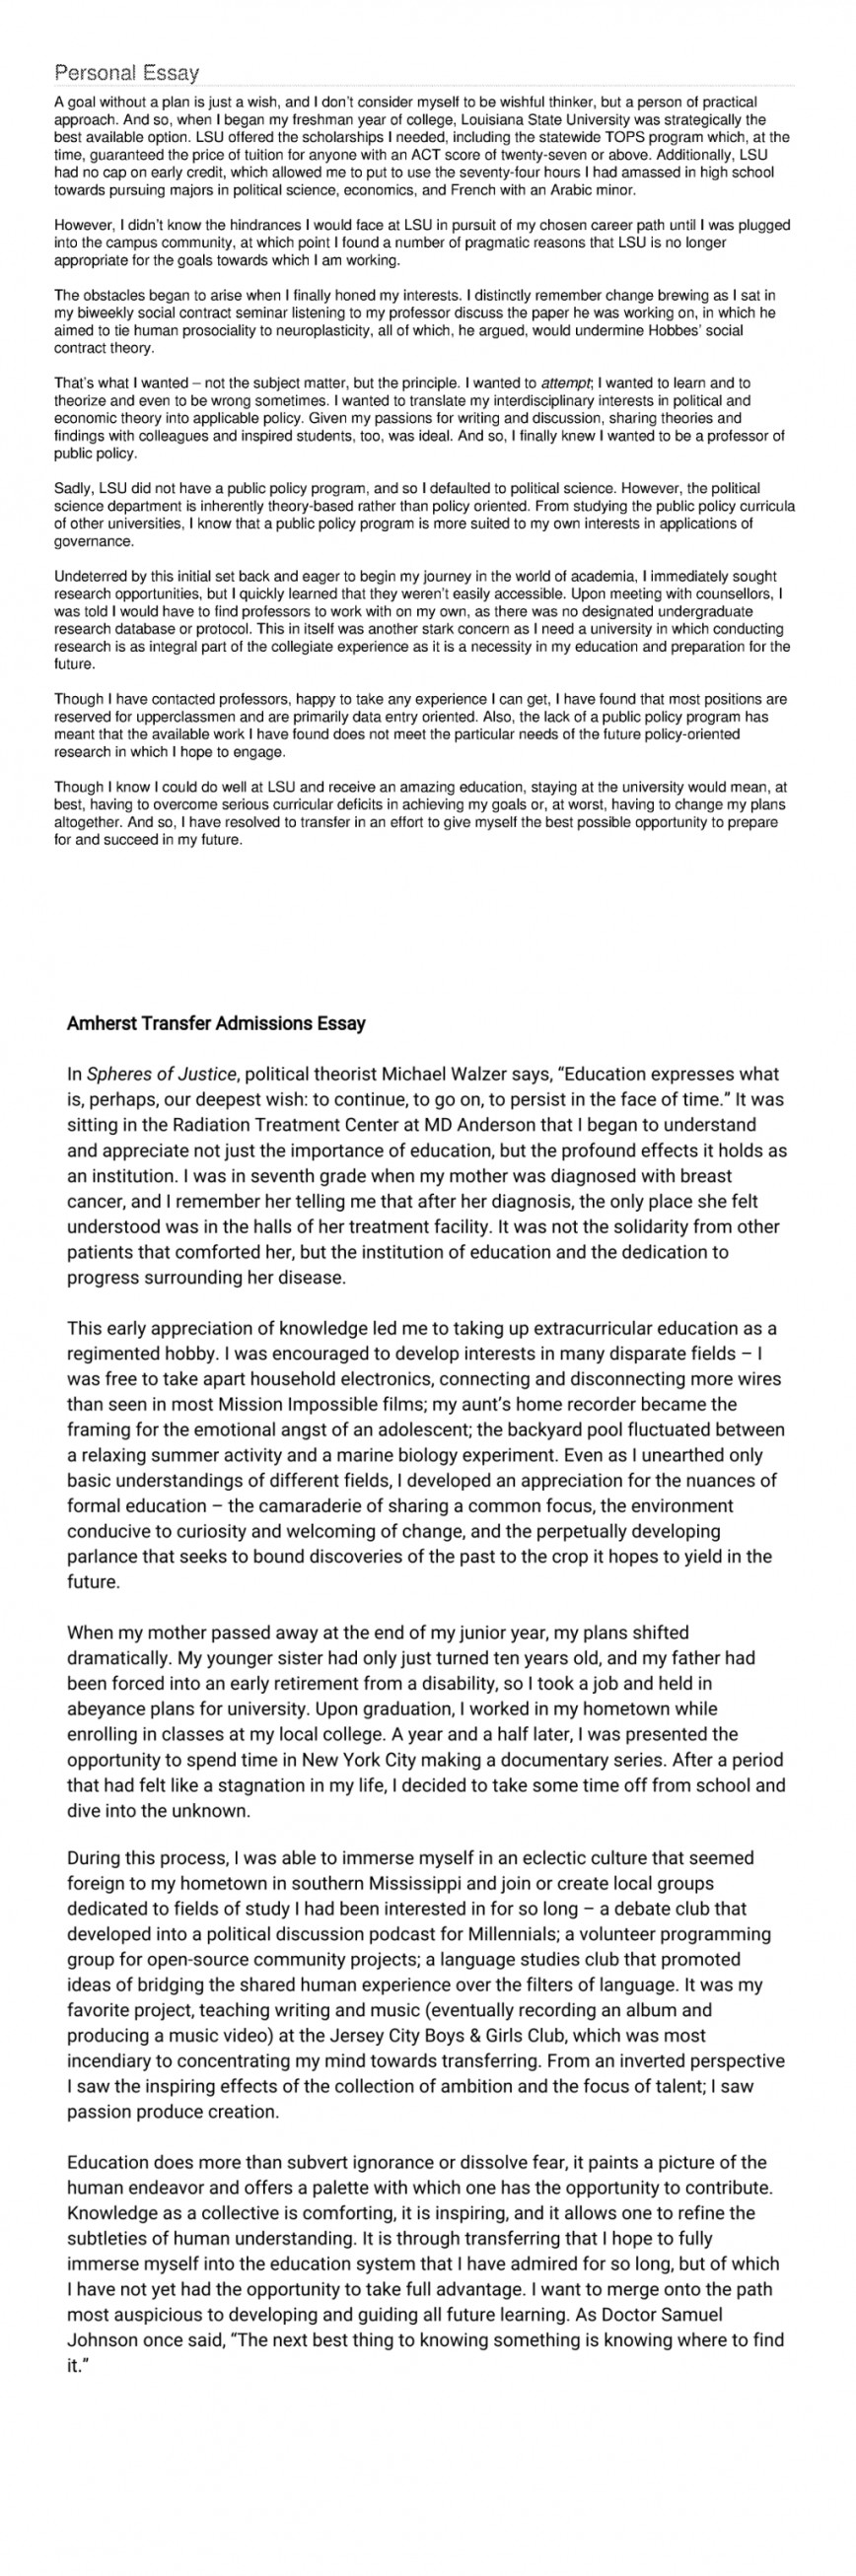 007 Essay Example Change For The Beautiful Better How Can We World To